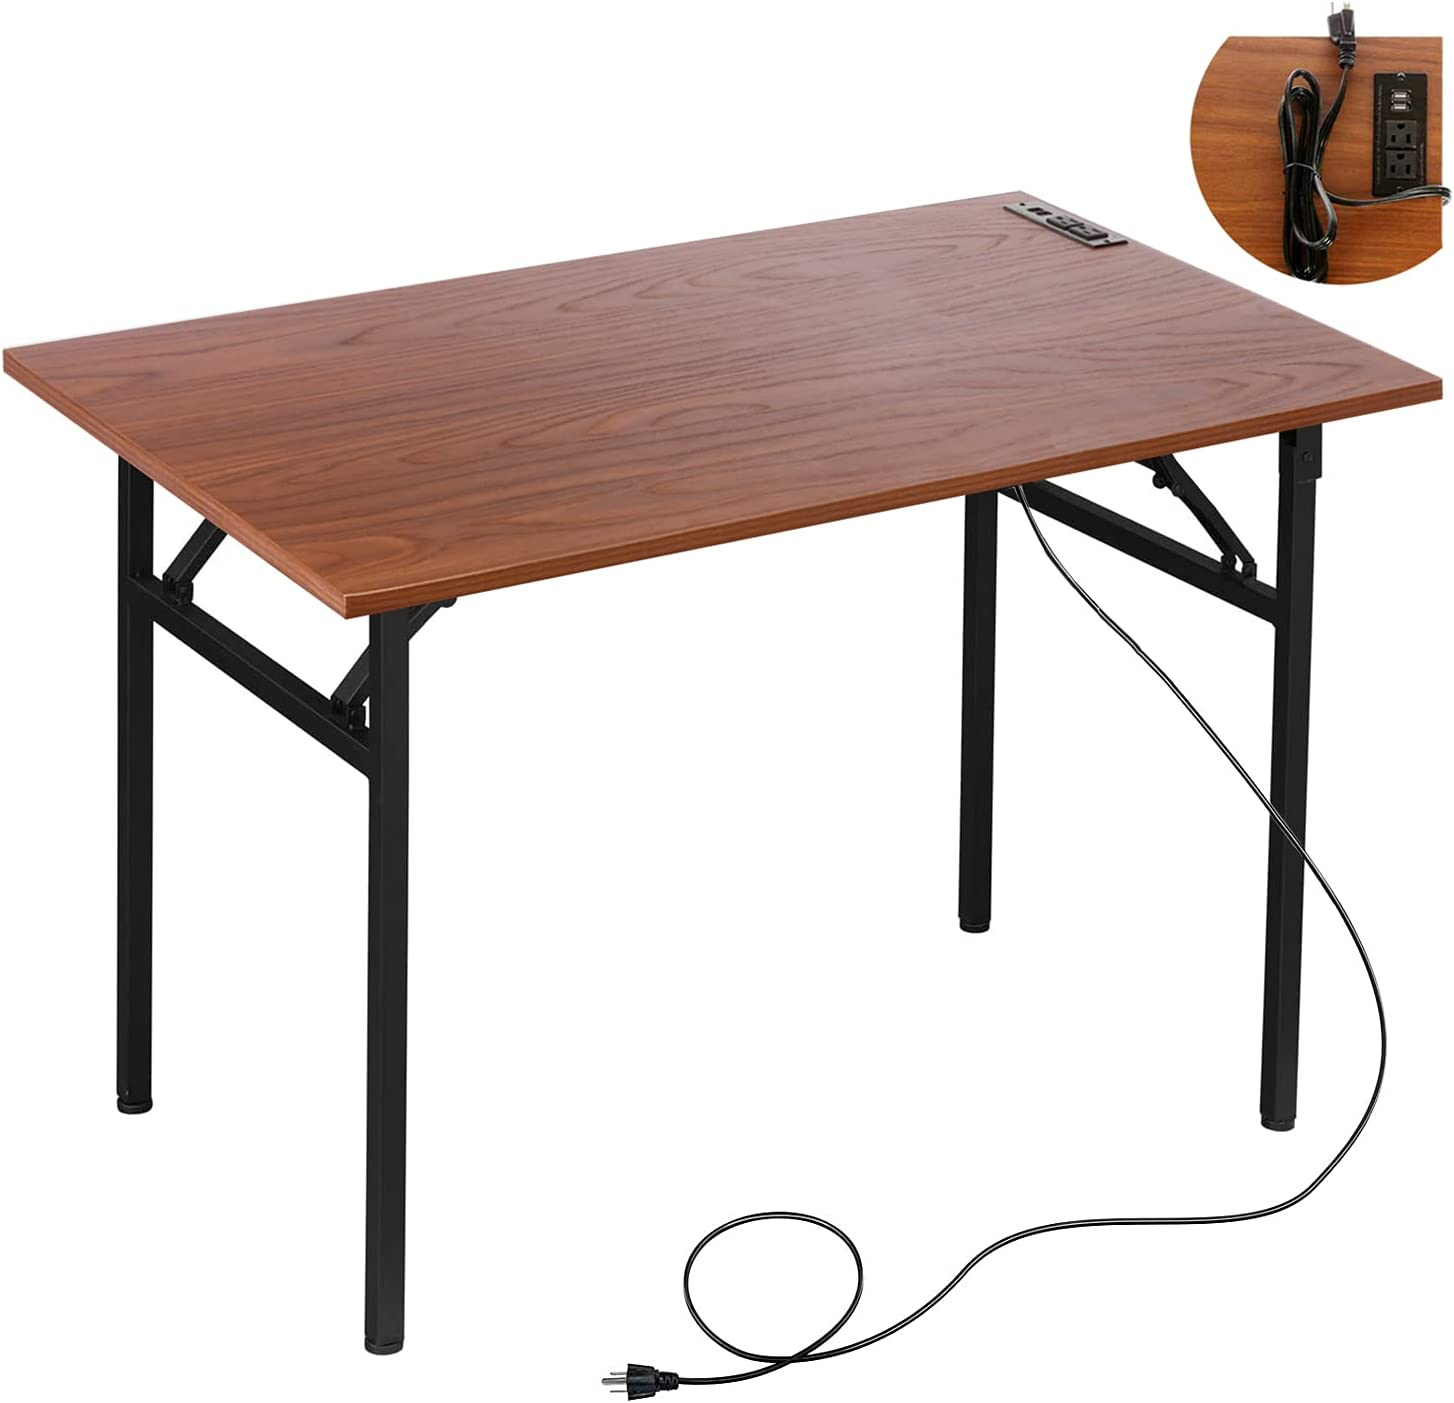 31.5'' Folding Desk with USB Ports & Power Plugs Computer Desk for Small Space No Assembly Required, Portable Office Writing Computer Desks for Home Office, Brown